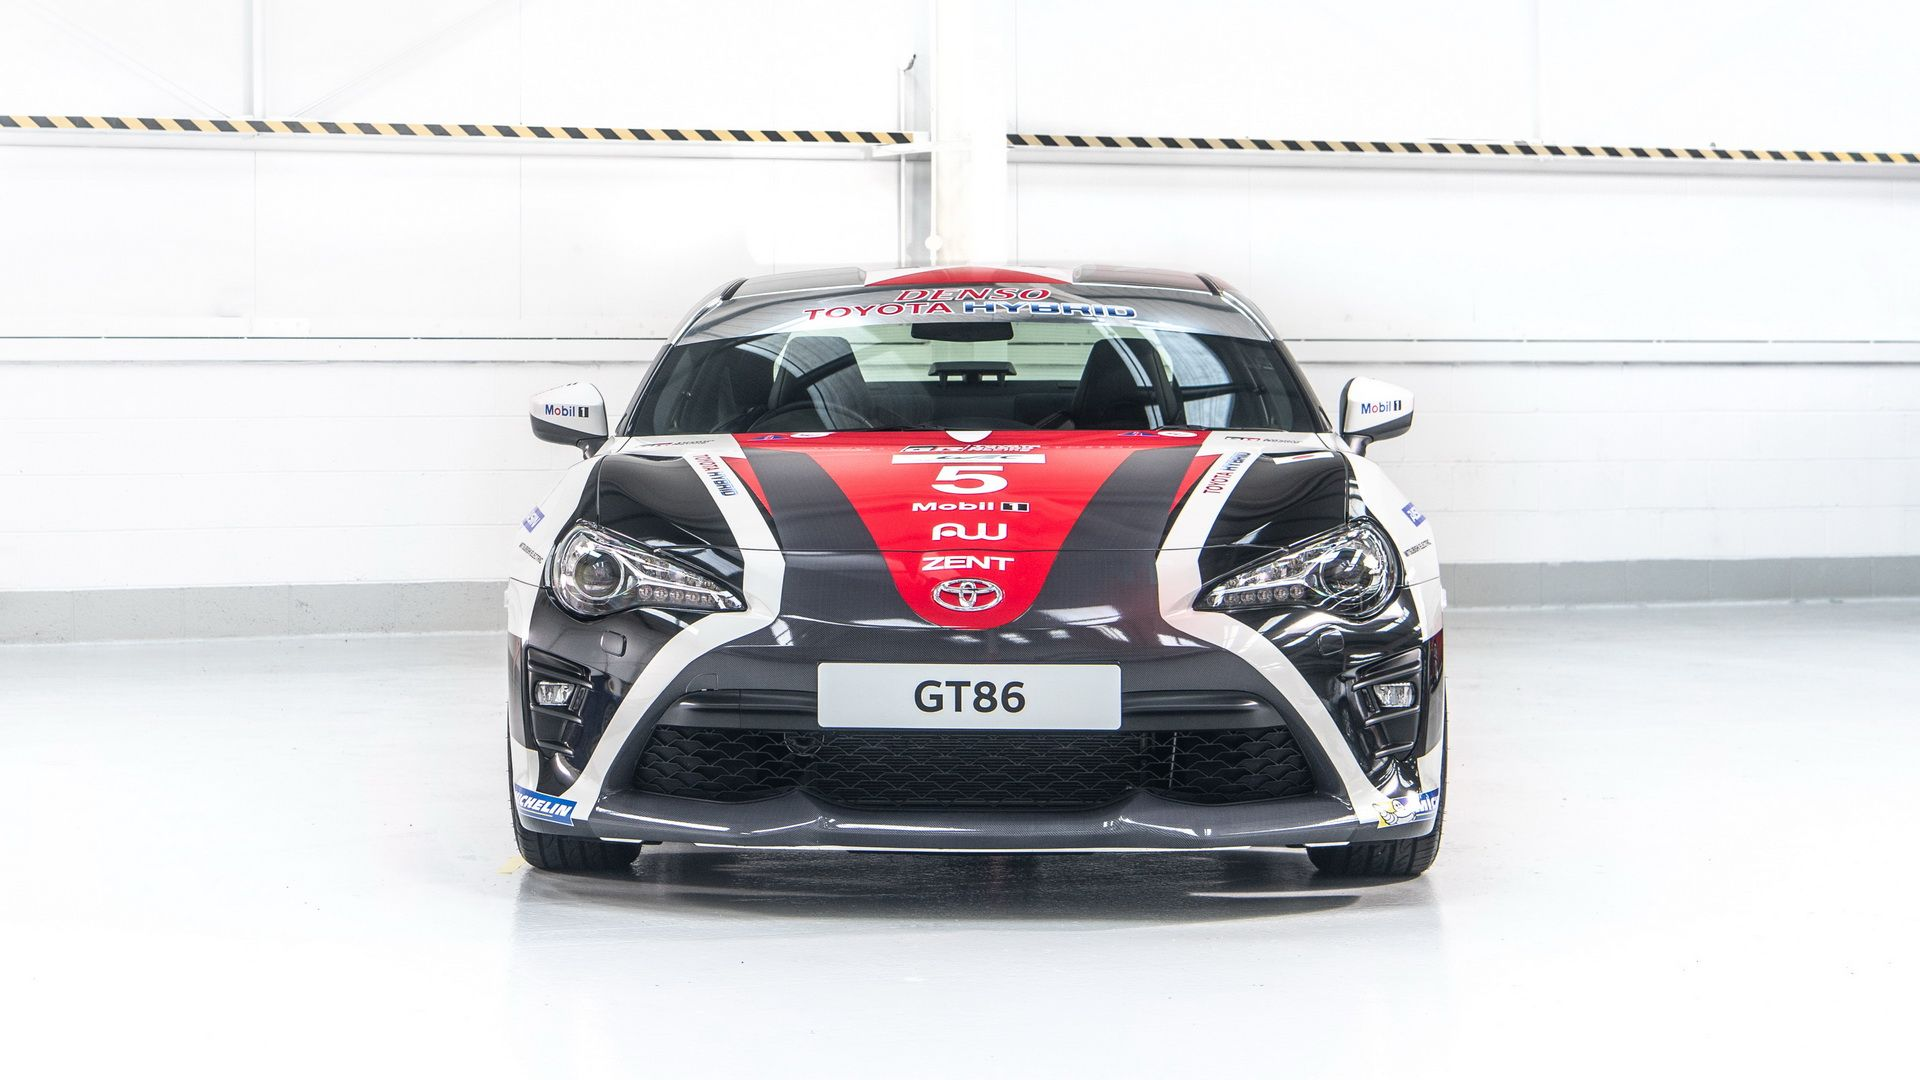 toyota-gt86-heritage-livery-24-hours-of-le-mans-8